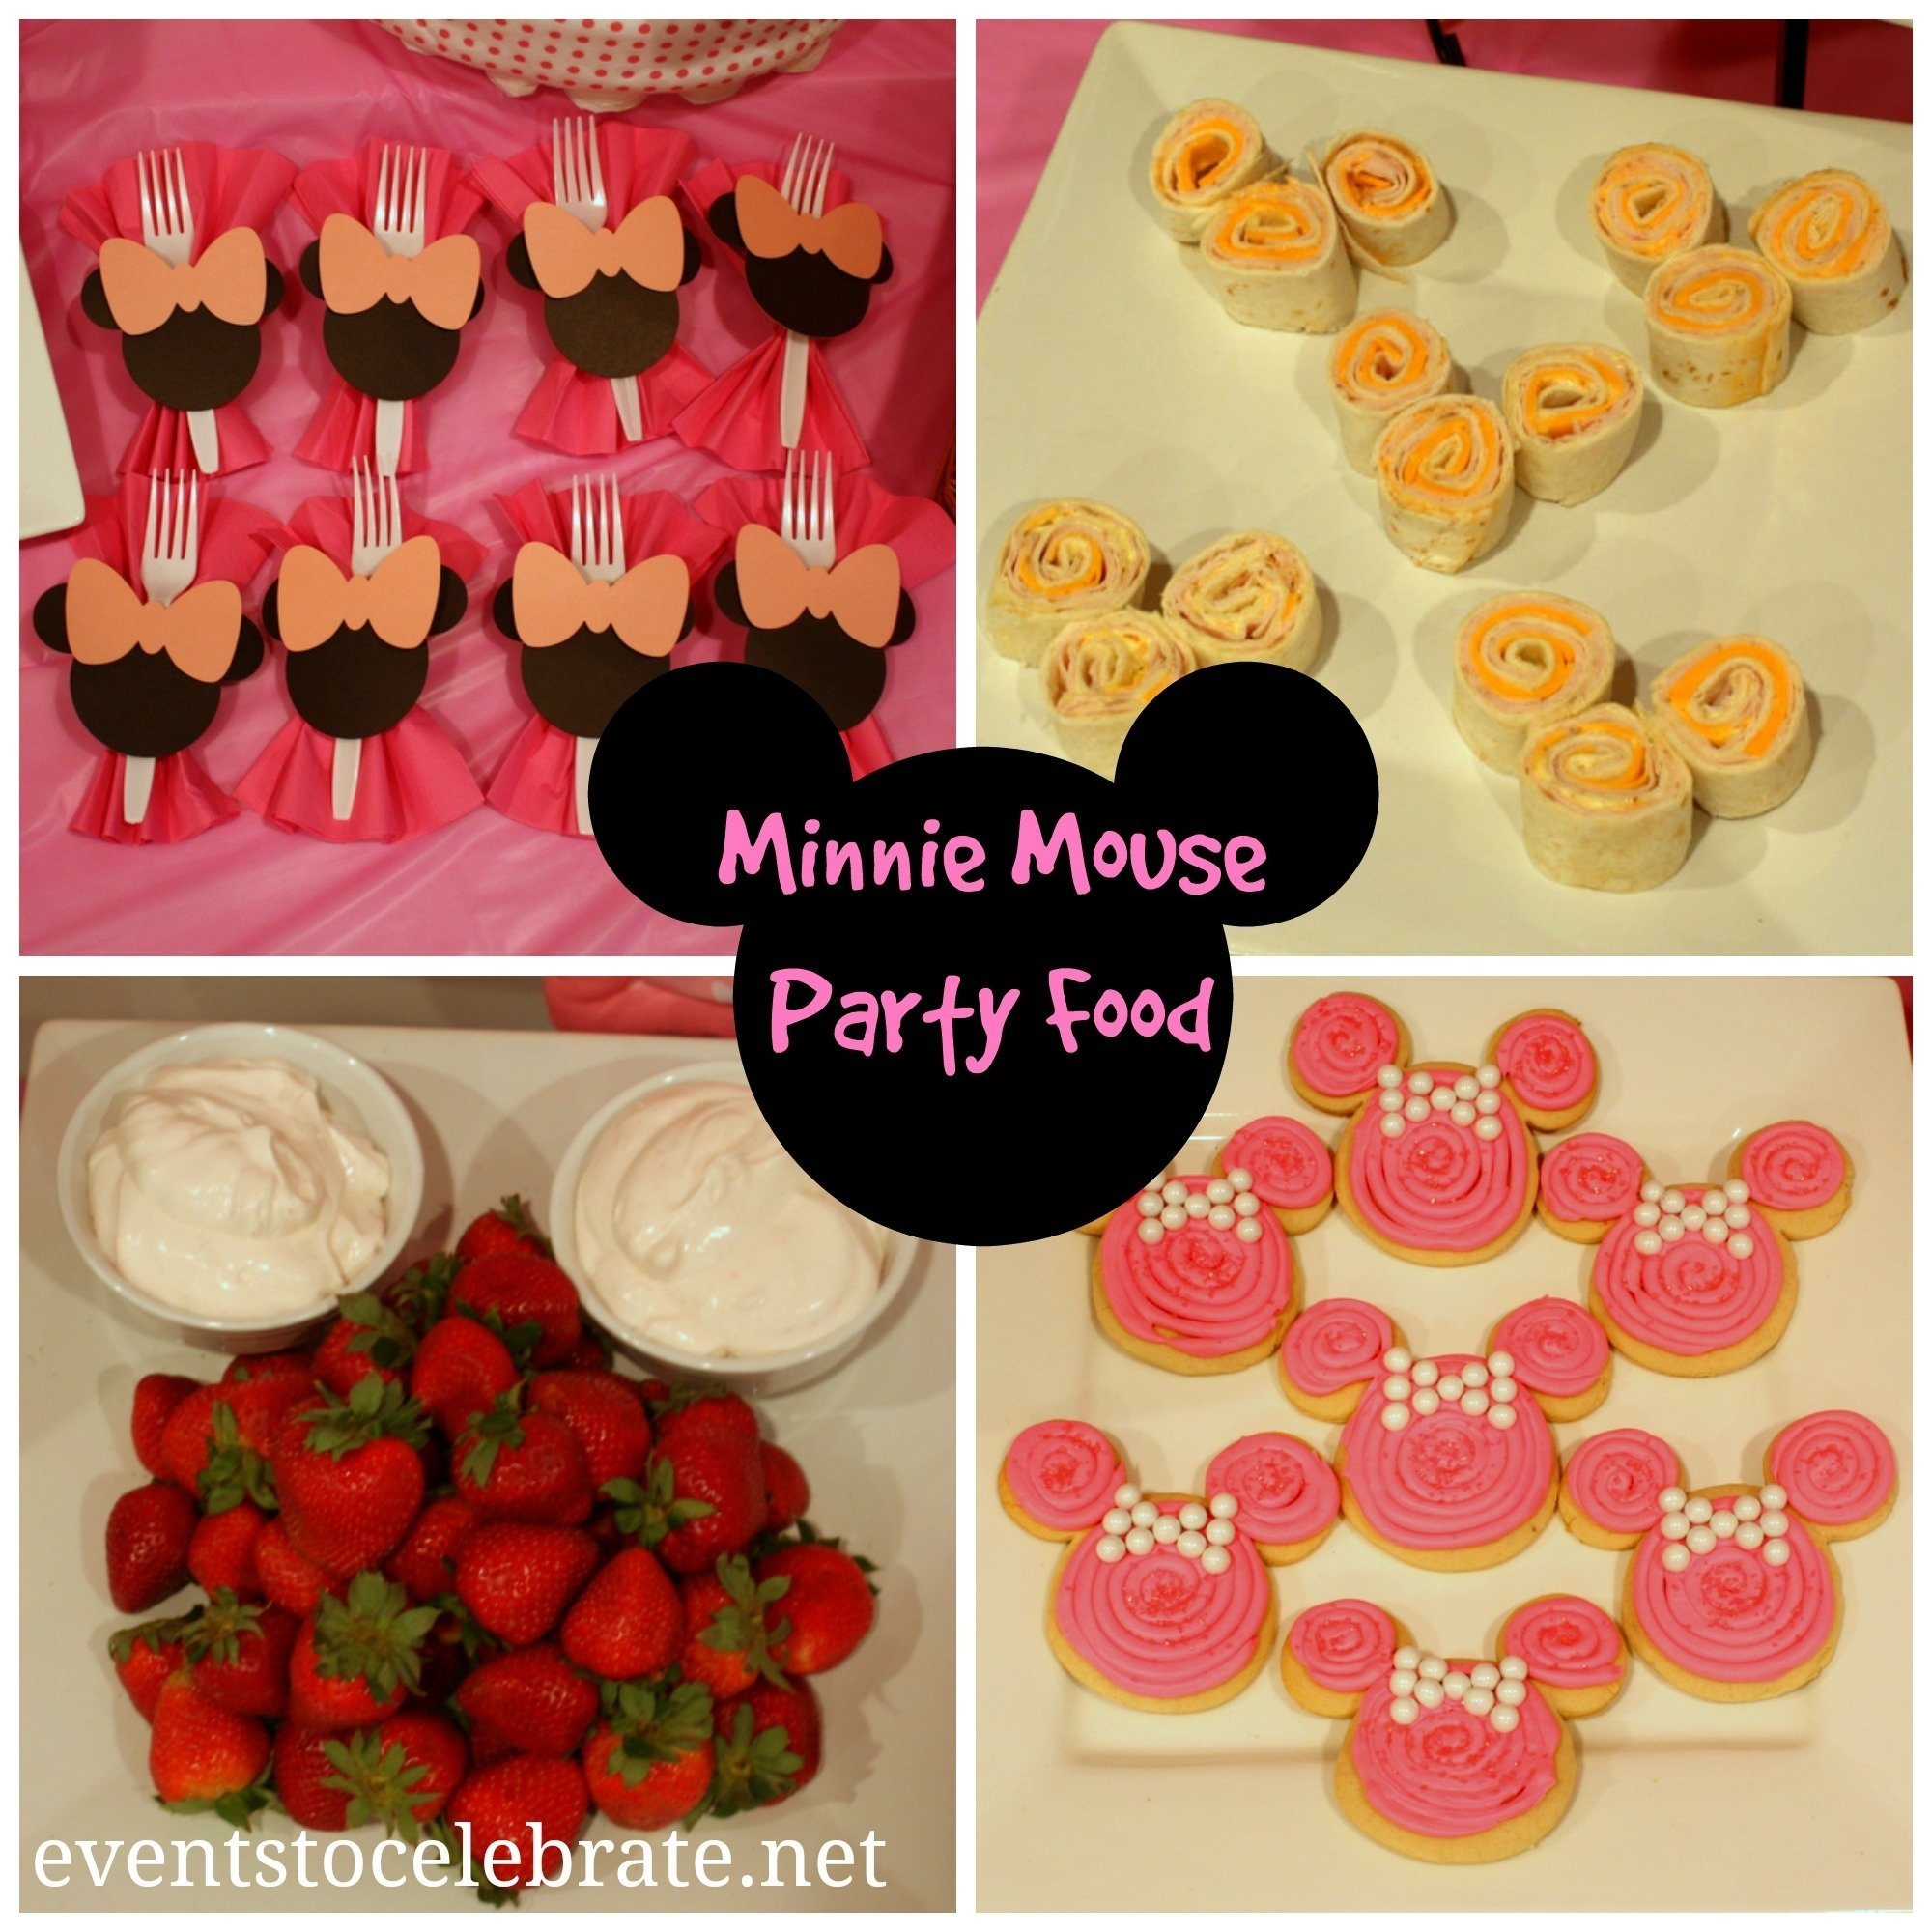 10 Fabulous Minnie Mouse Birthday Party Food Ideas minnie mouse baby shower ideas minnie mouse food ideas and mice 2020